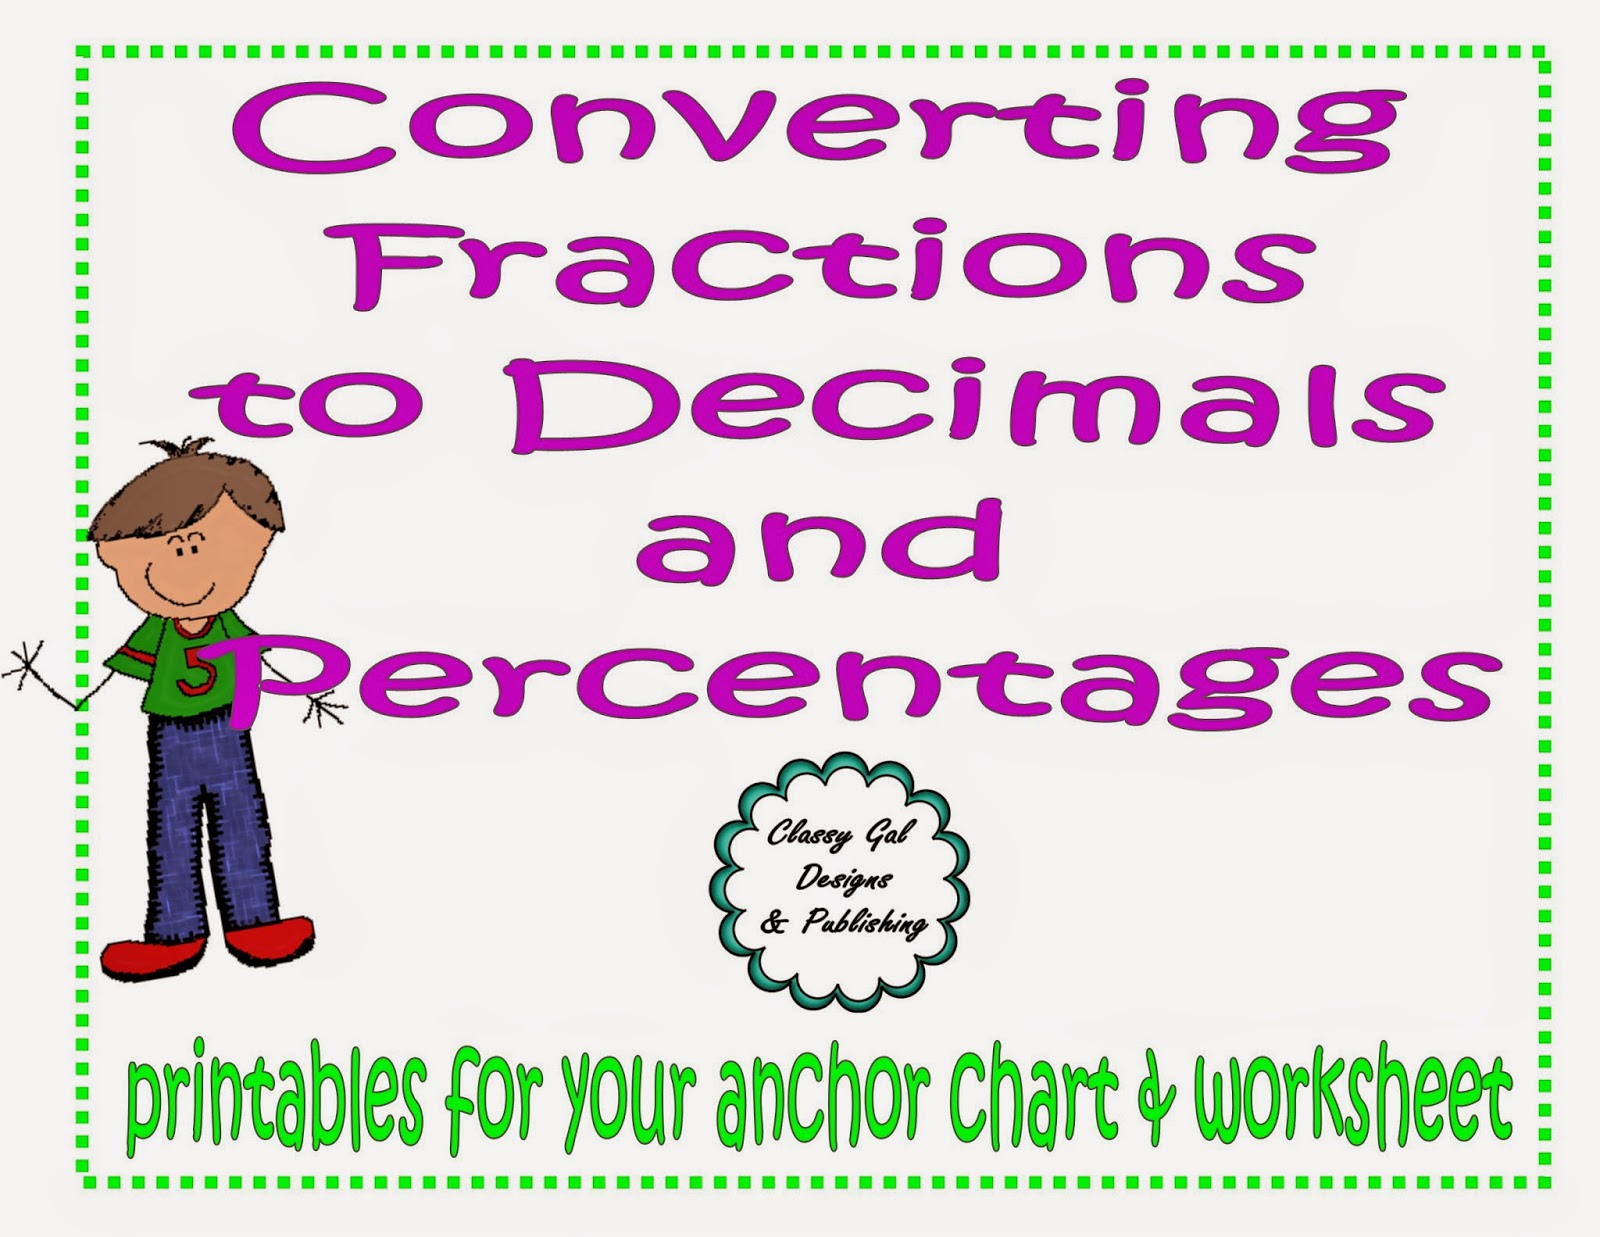 Classy Gal Designs And Publishing Printable Anchor Chart Converting Fractions To Decimals